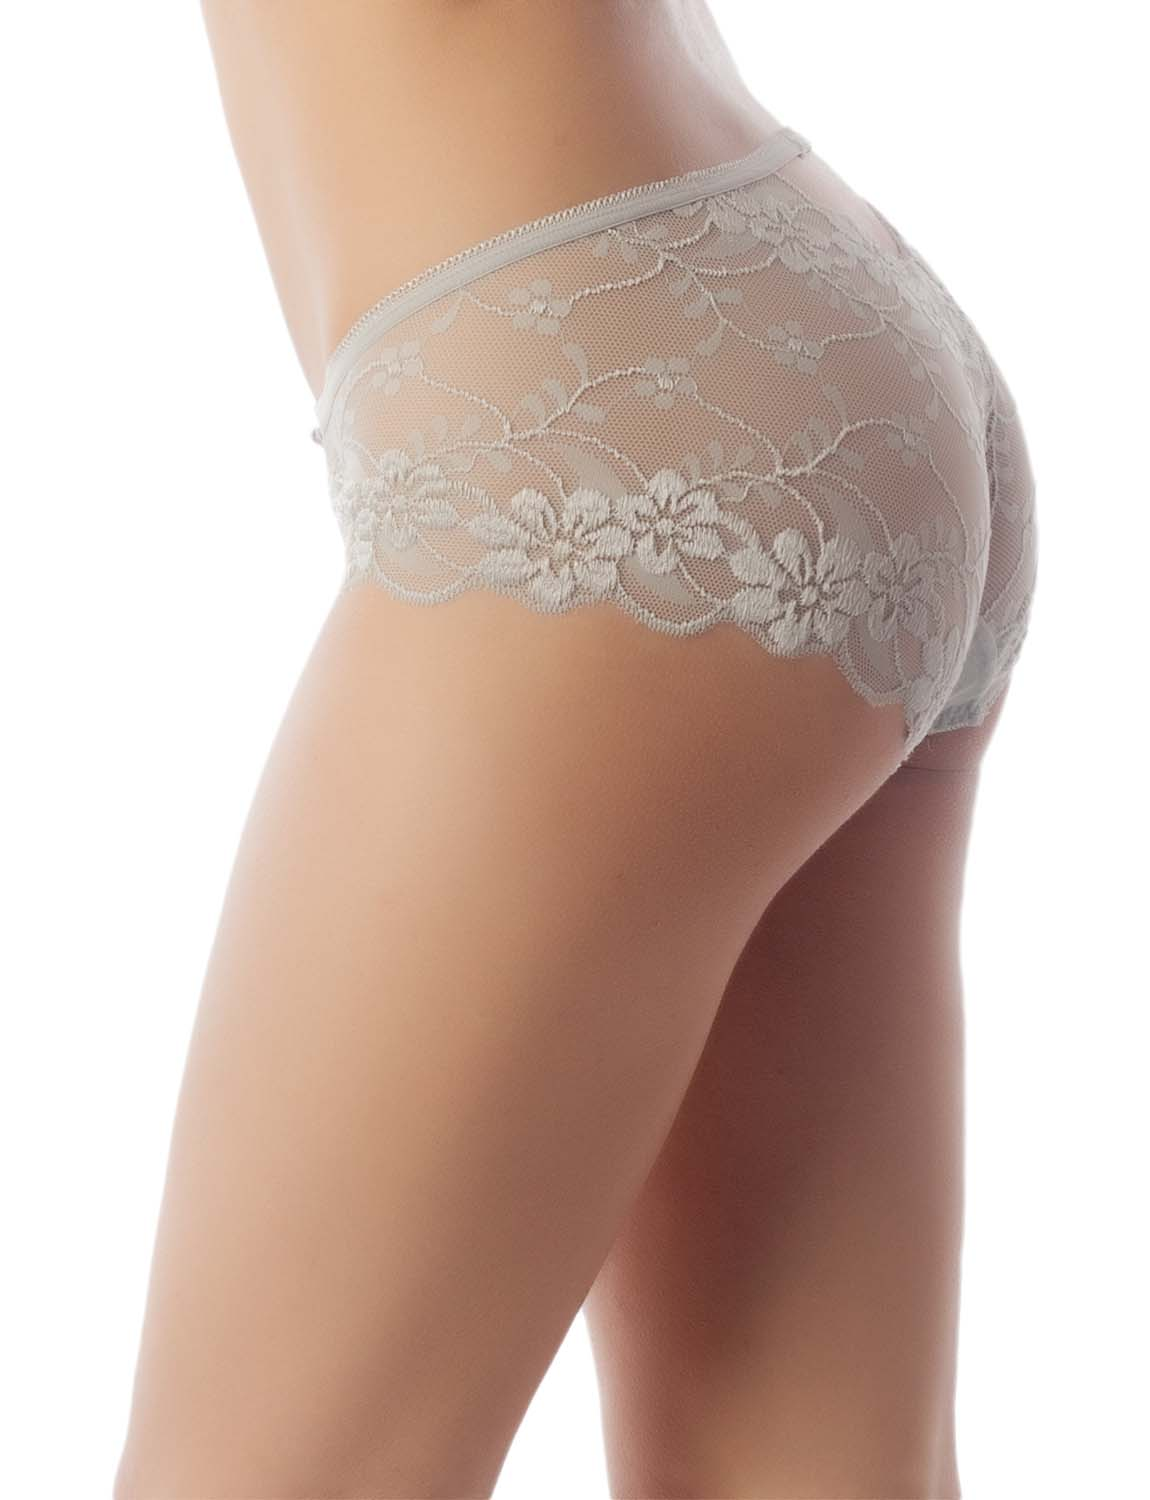 Women's Keyhole Lace Mesh See-Through Floral Winged Low Rise Hipster Panty, Size: L, Light Cool Grey